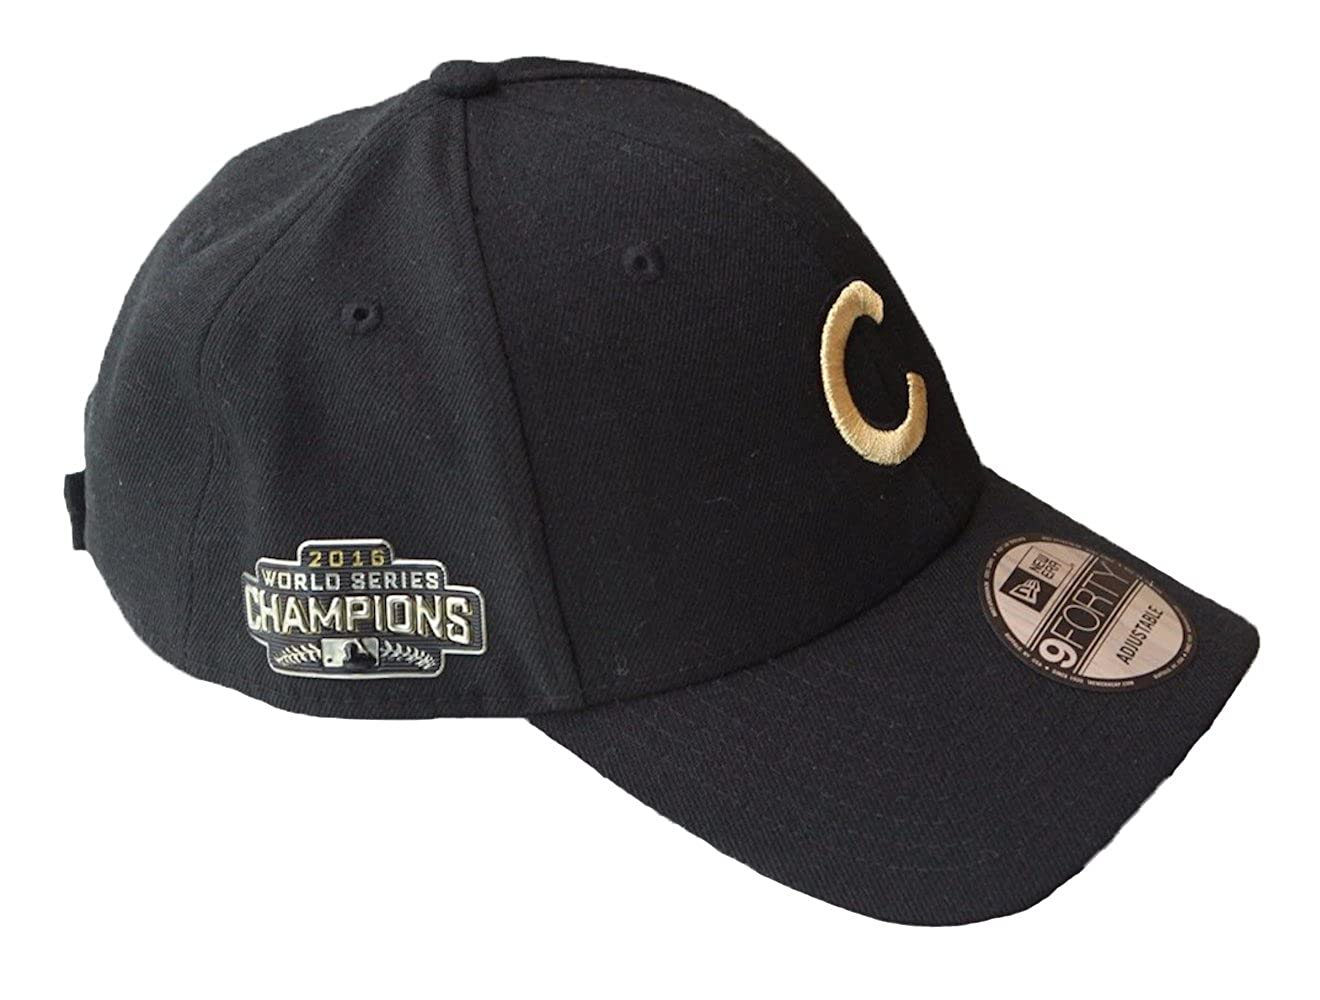 ddf37010c1040 Amazon.com  New Era Mens Chicago Cubs 9FORTY Adjustable 2016 World Series  Baseball Hat Black  Clothing